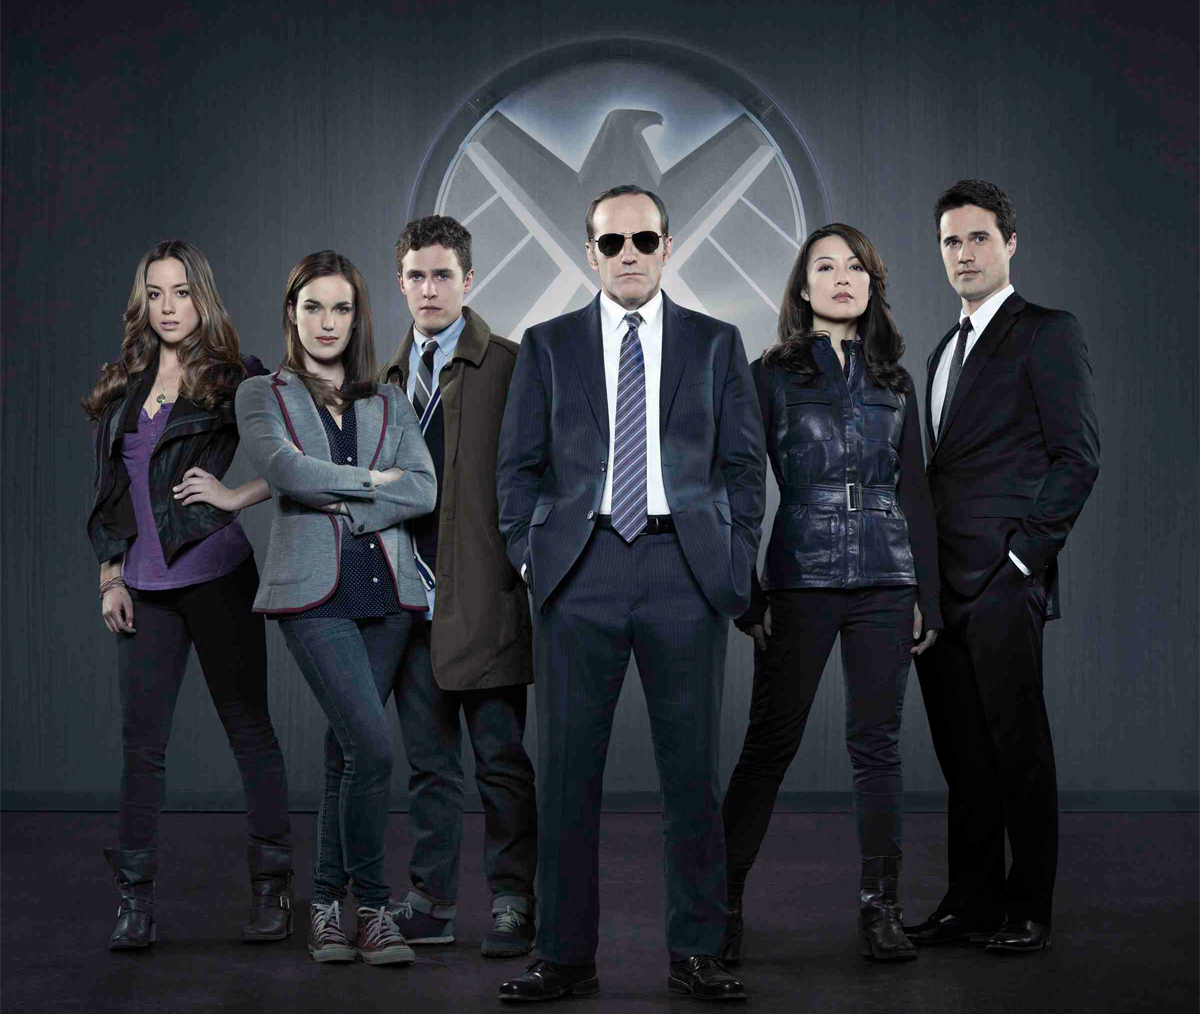 ... pick-up of the highly anticipated Marvel's Agents of S.H.I.E.L.D